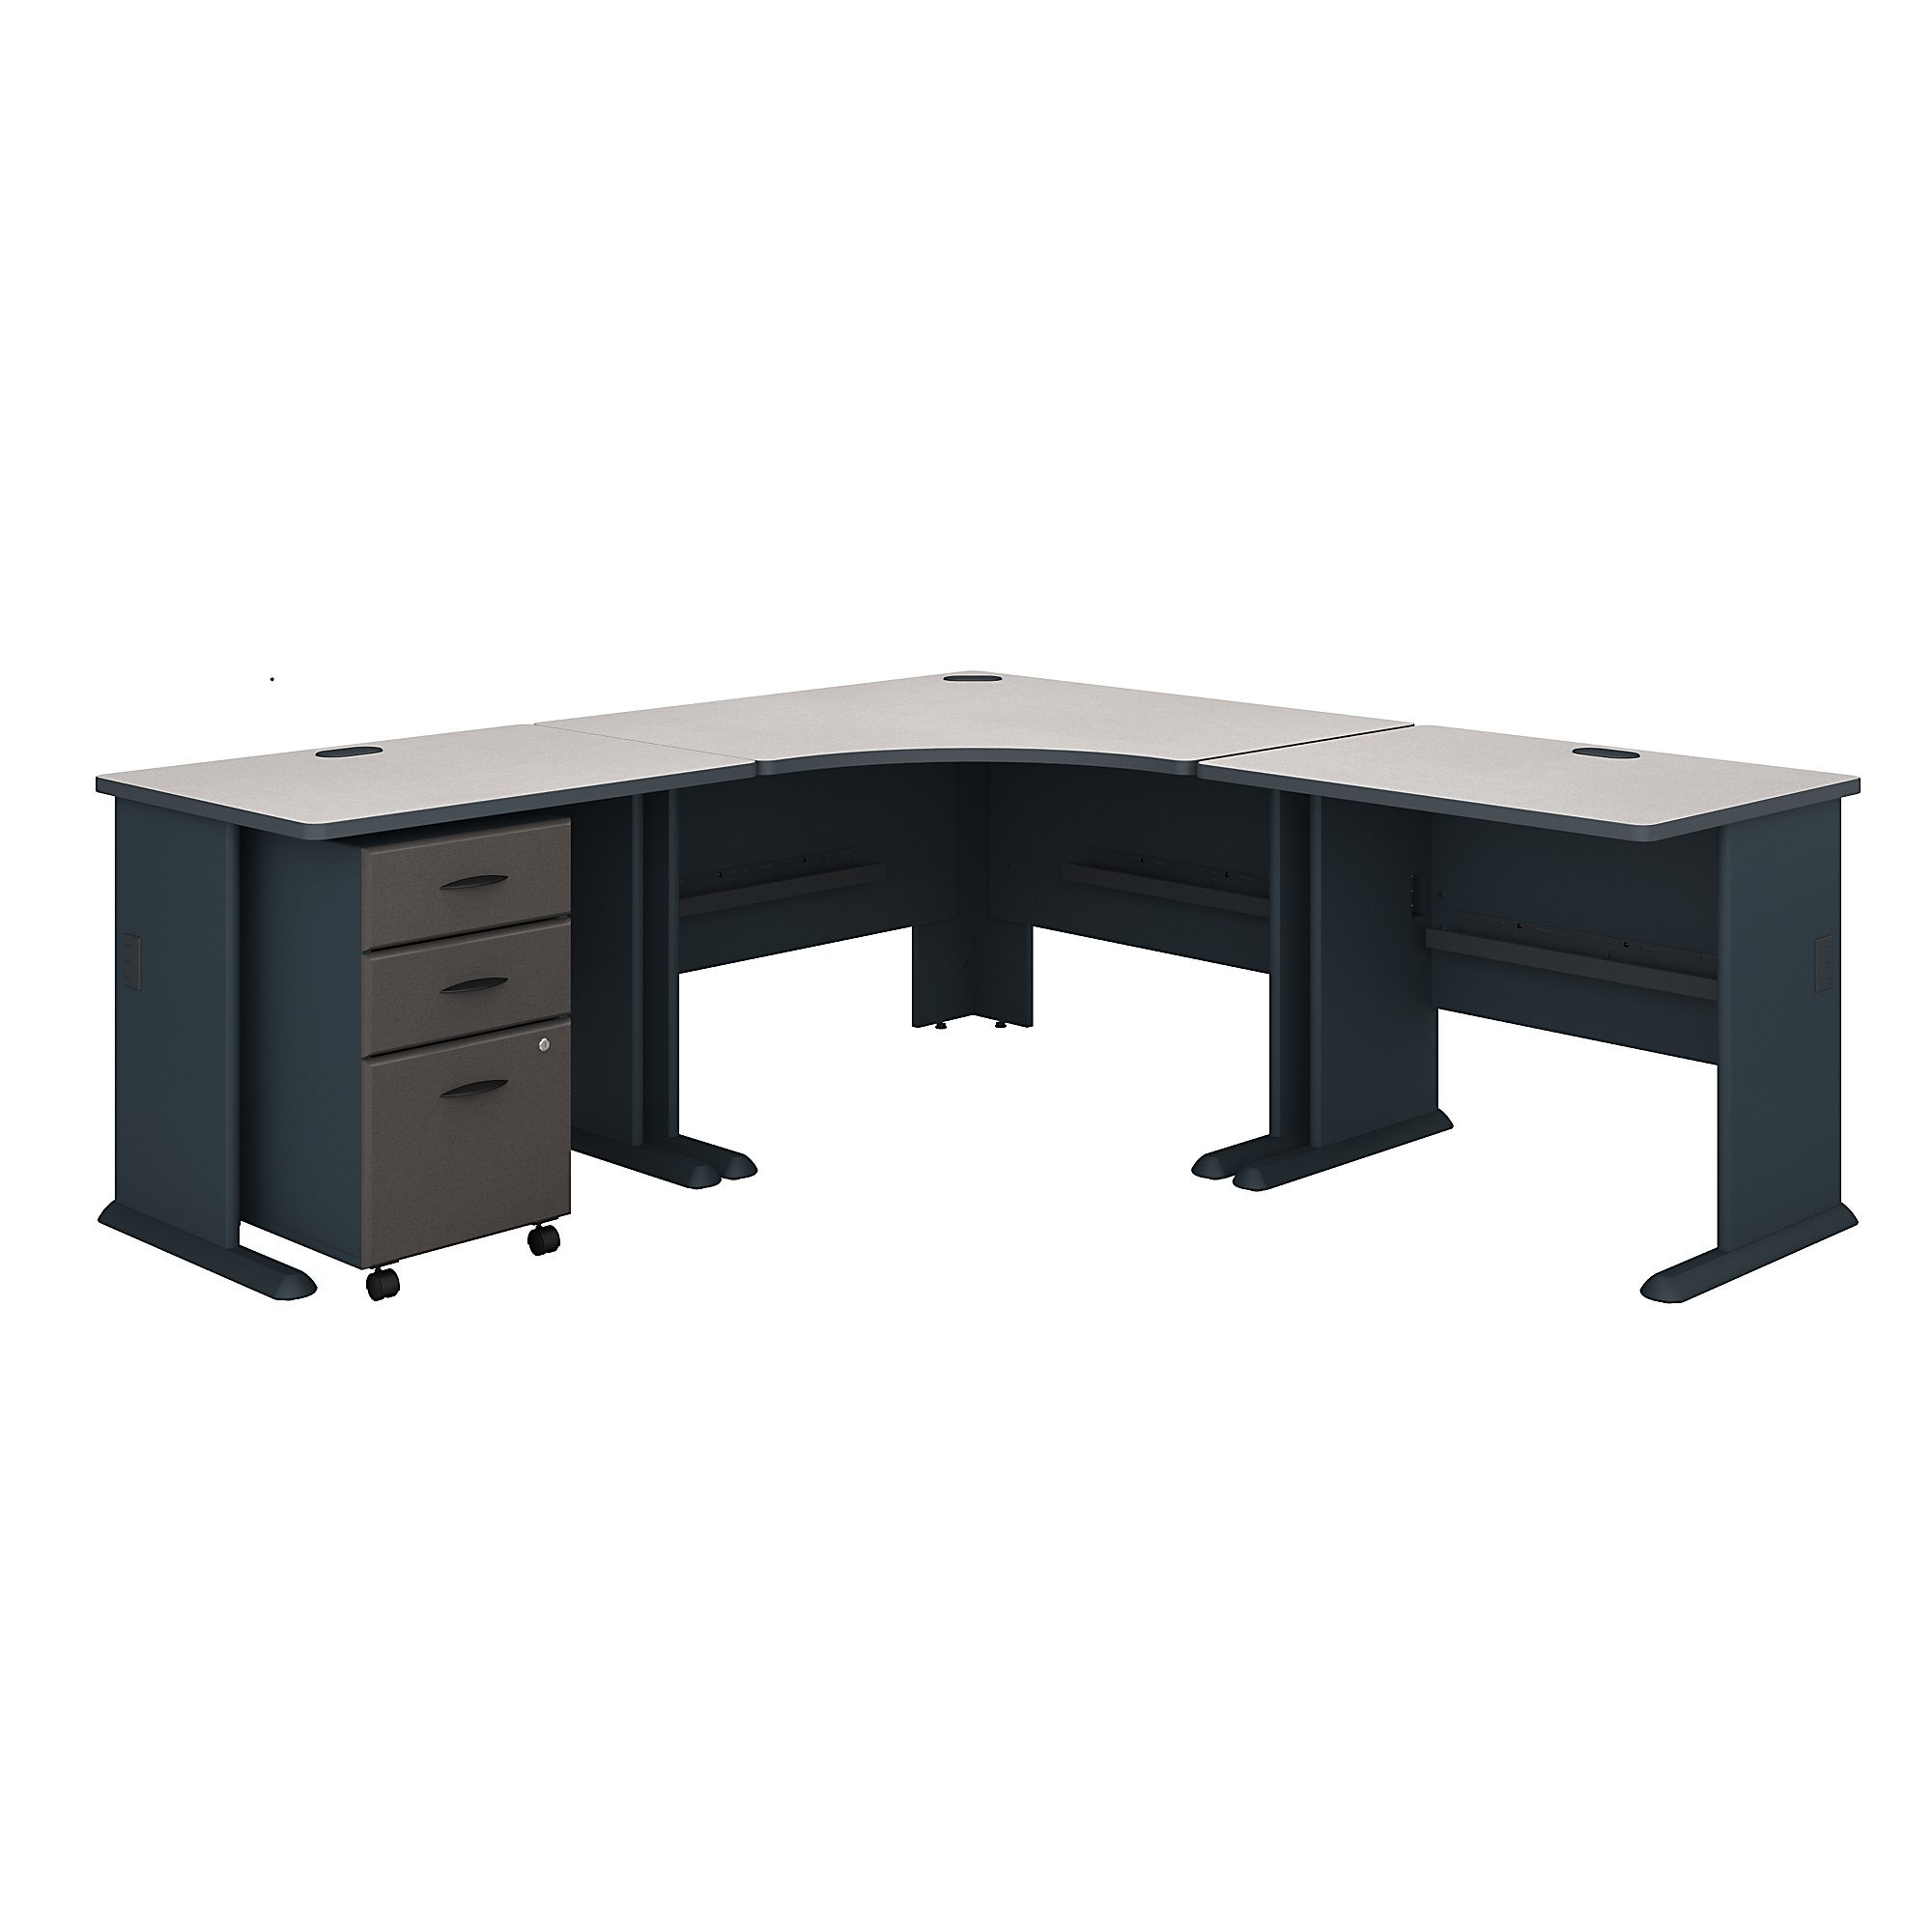 Bush Business Furniture Series A 84W x 84D Corner Desk with Mobile File Cabinet in Slate and White Spectrum by Bush Business Furniture